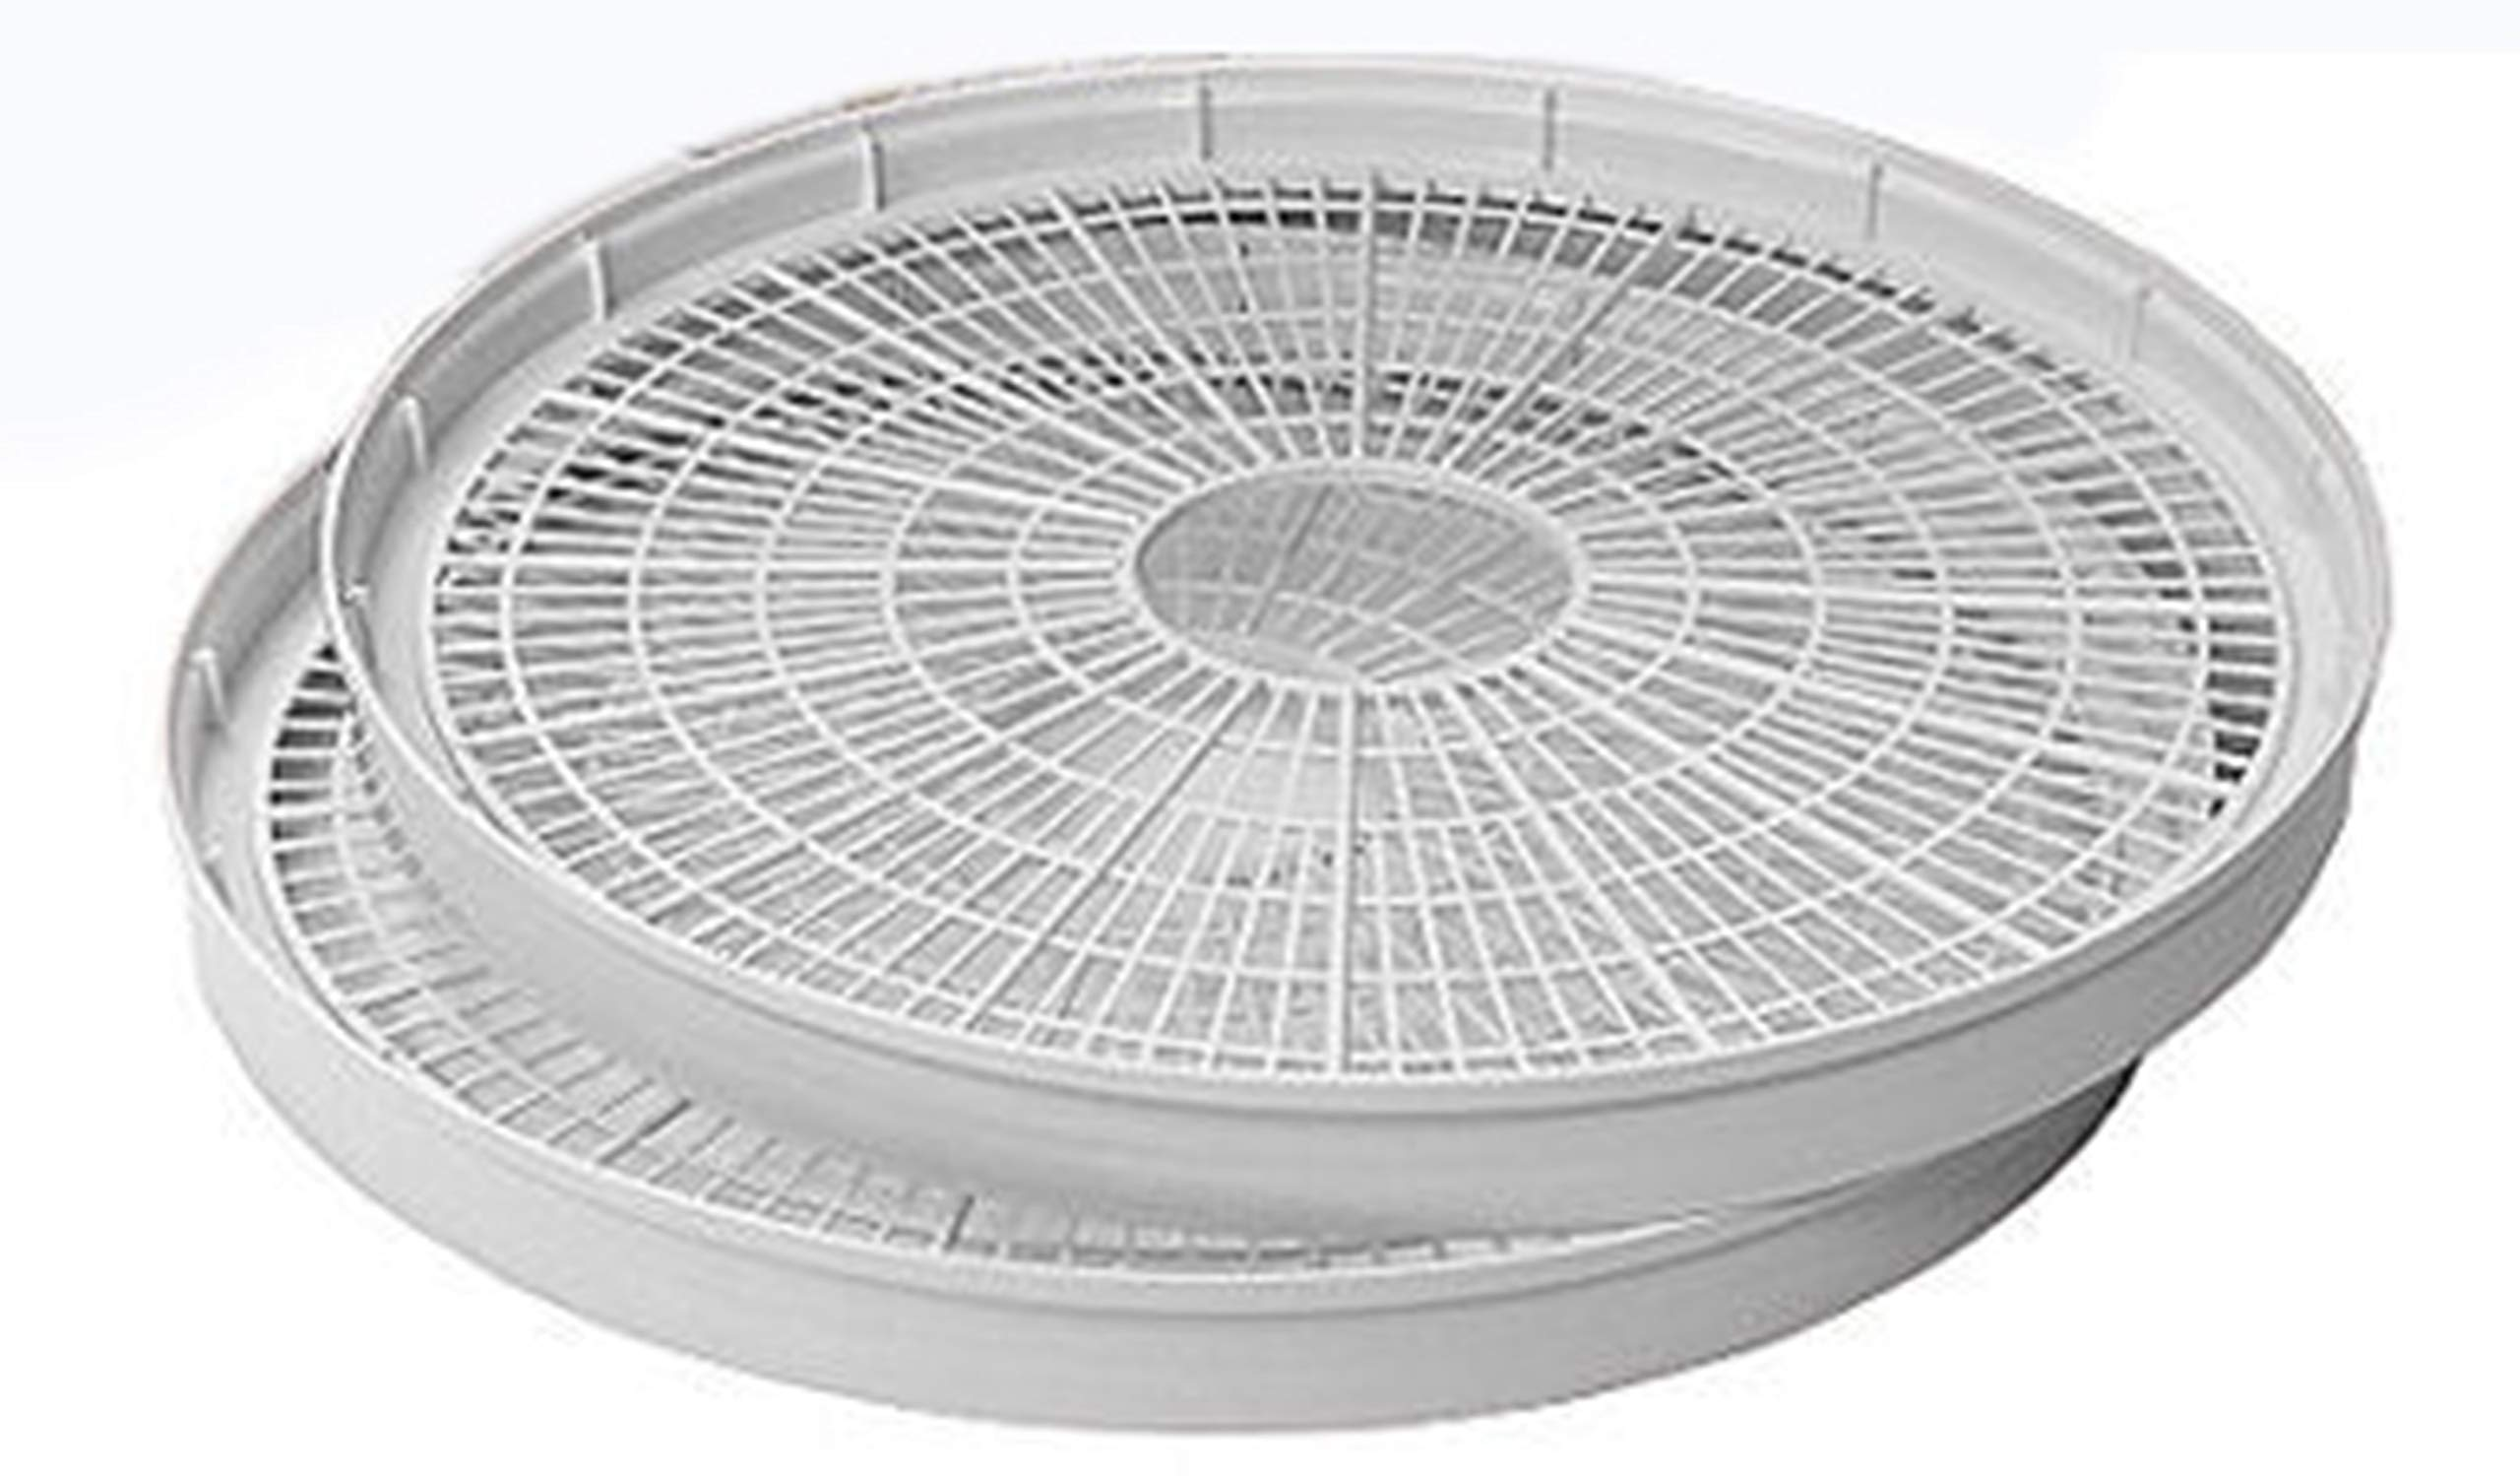 NESCO WT-2, Add-a-Tray for Dehydrators FD28JX and FD-35, White, Set of 2 by Nesco